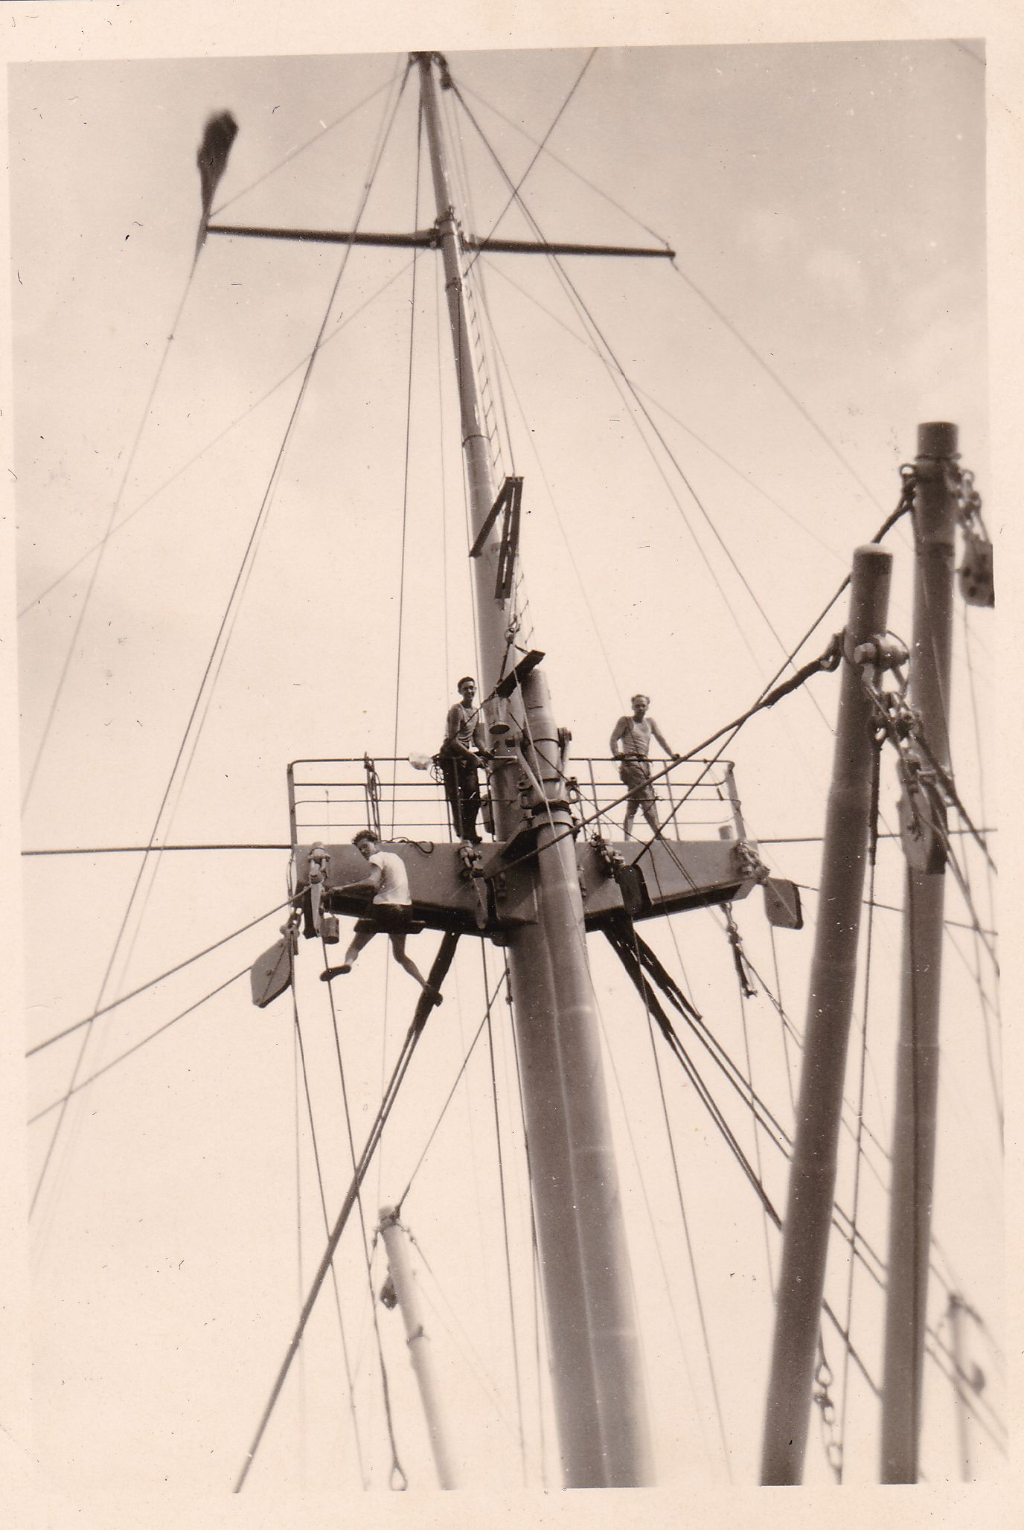 ss. Salland ca 1950 matrozen in de mast.jpeg